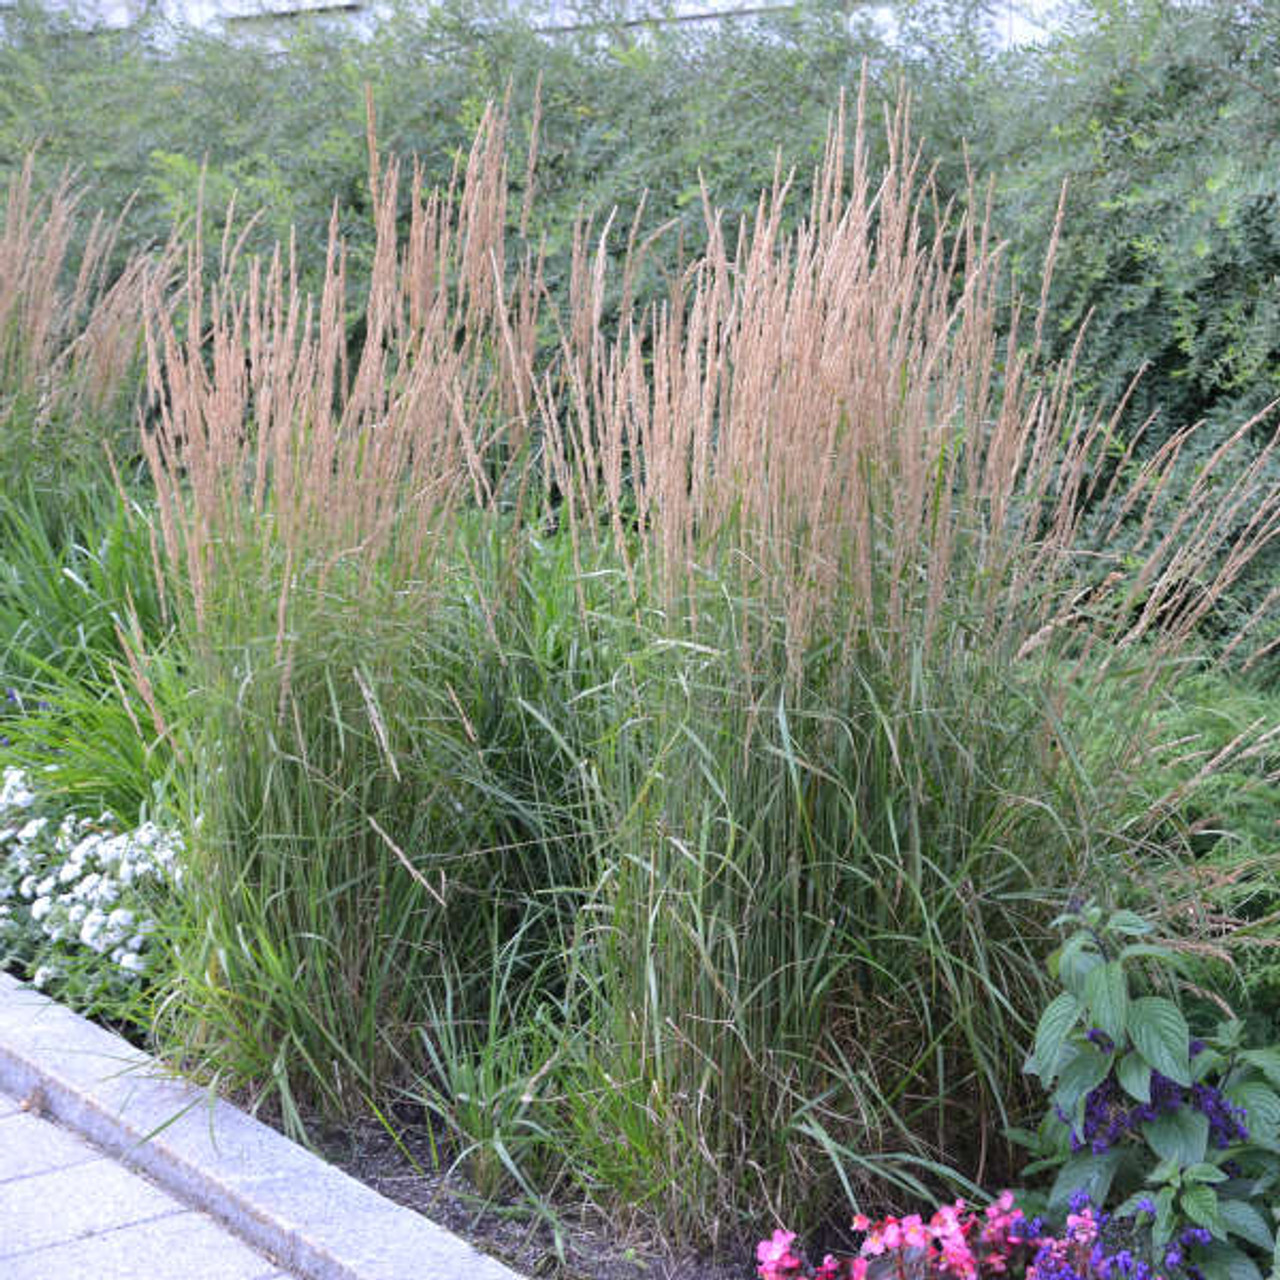 Calamagrostis acutiflora 'Karl Foerster' Photos courtesy of Walters Gardens, Inc.